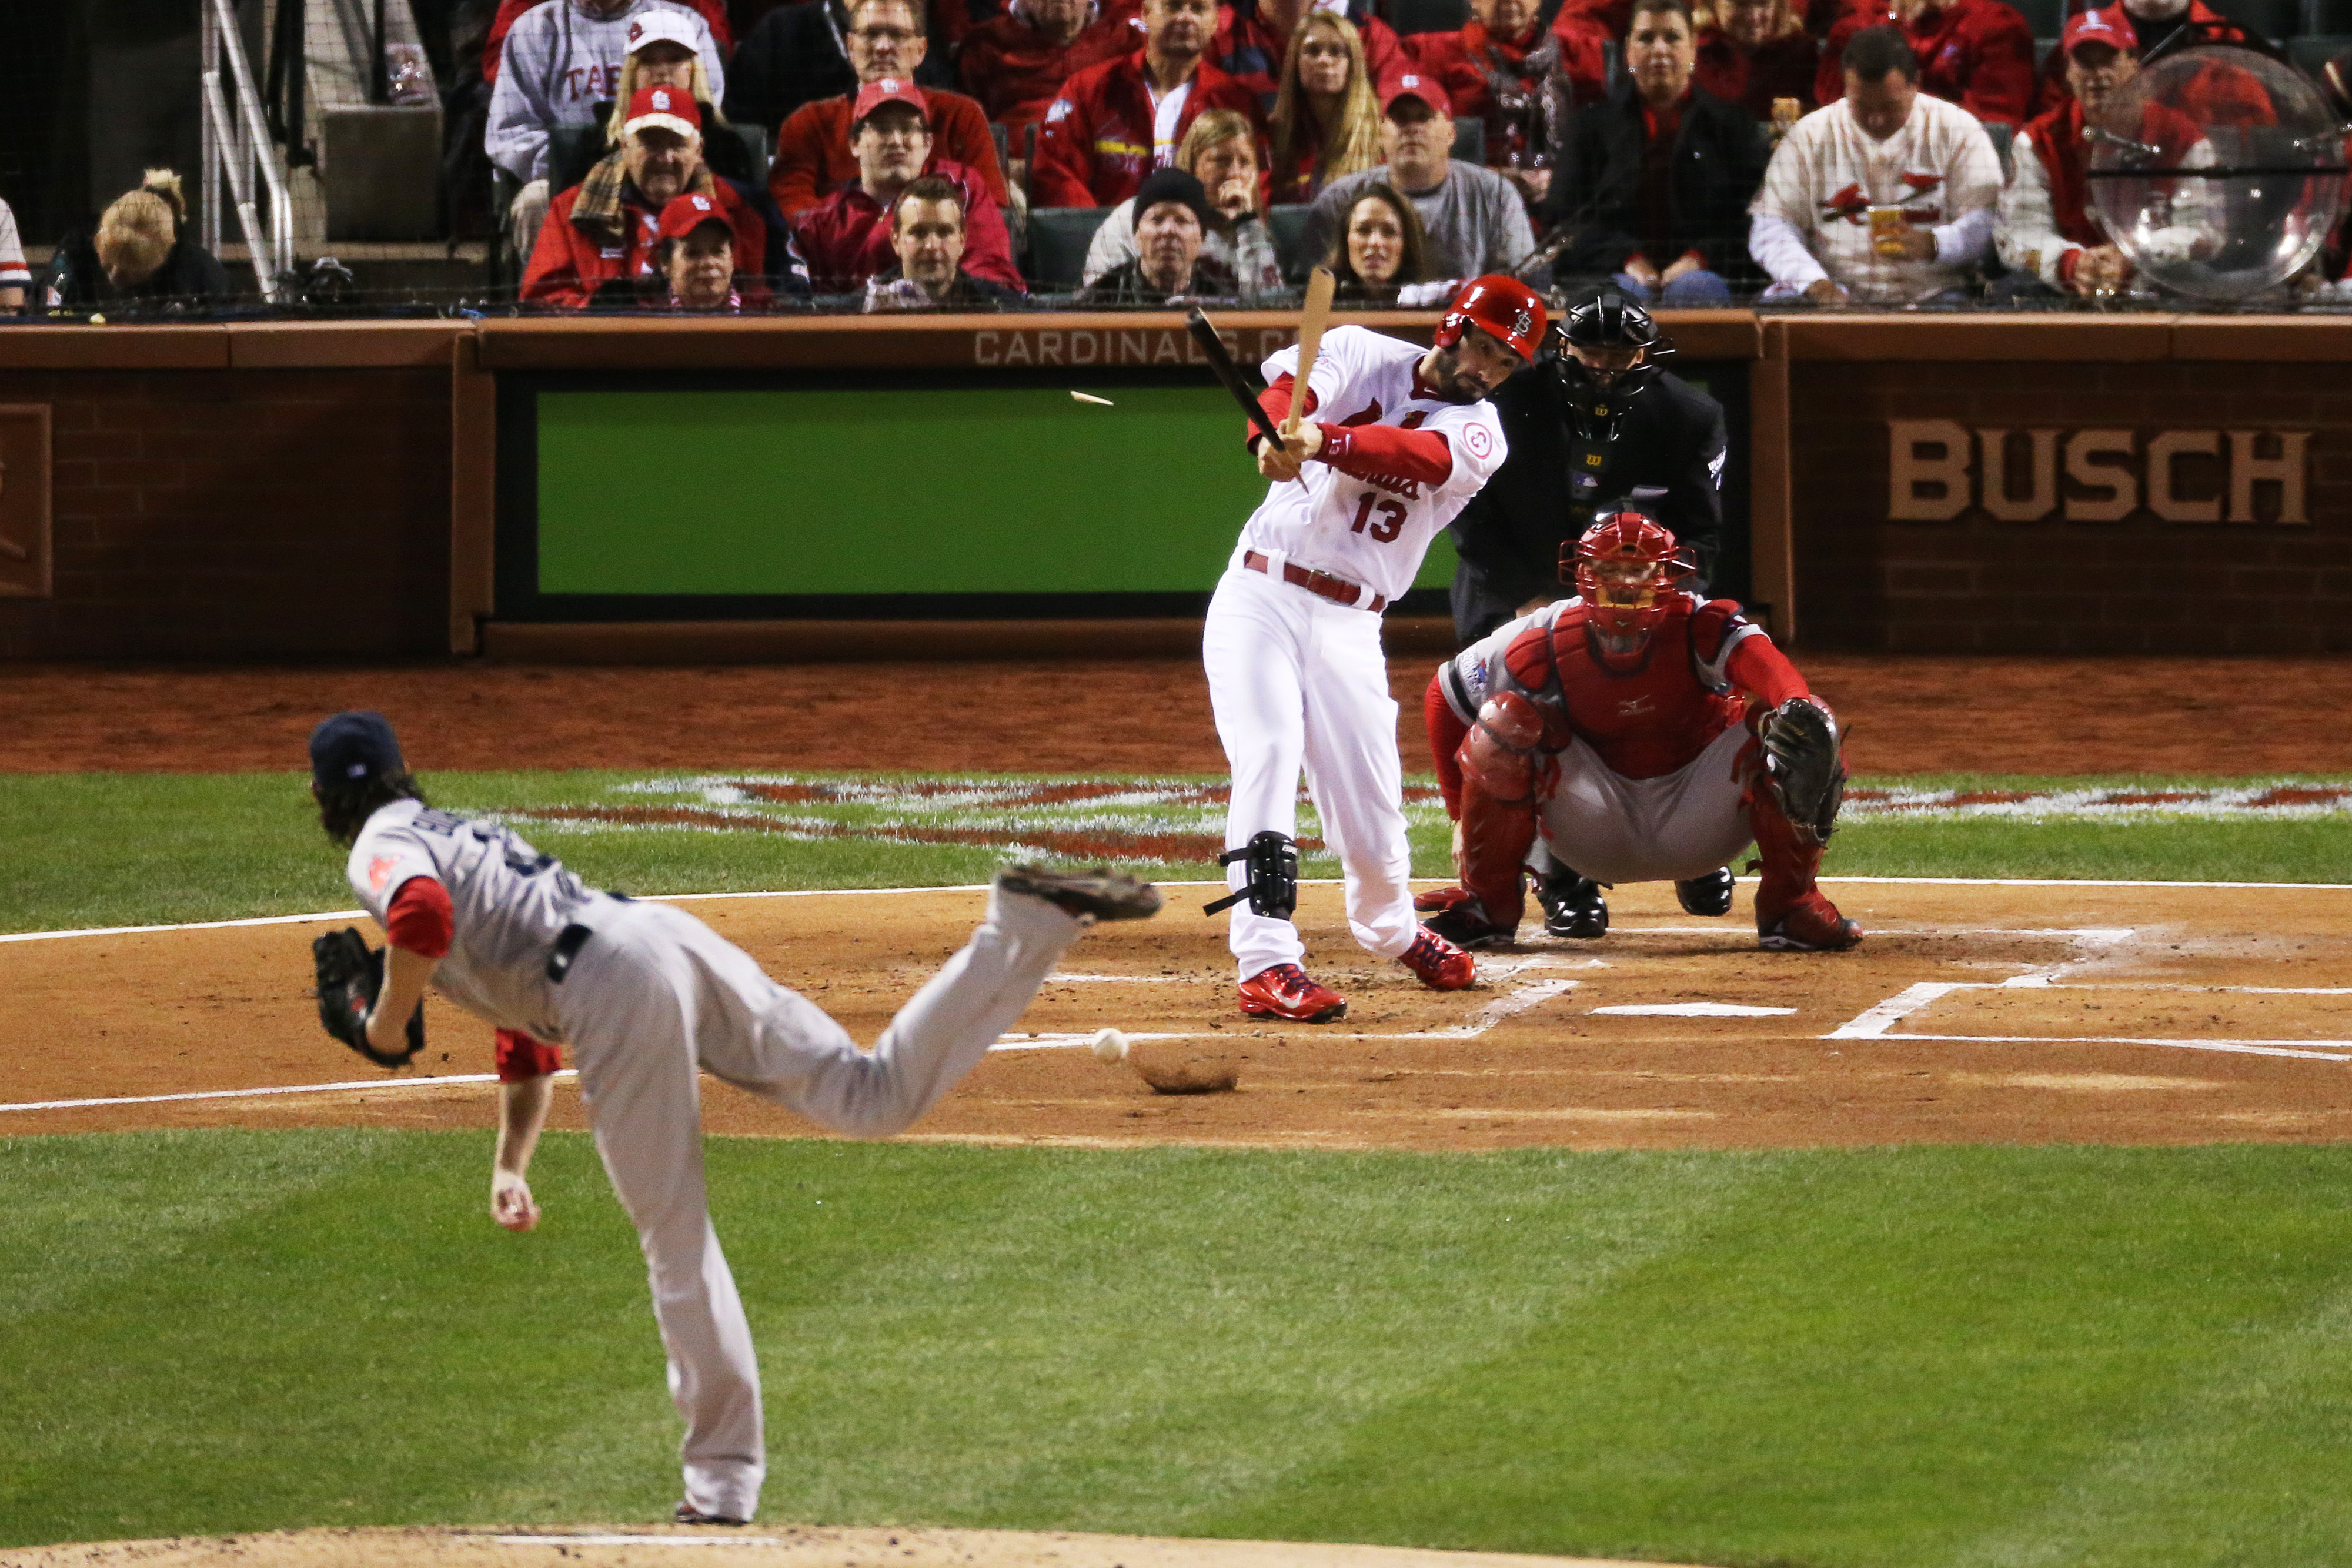 Matt Carpenter almost caught with his pants down